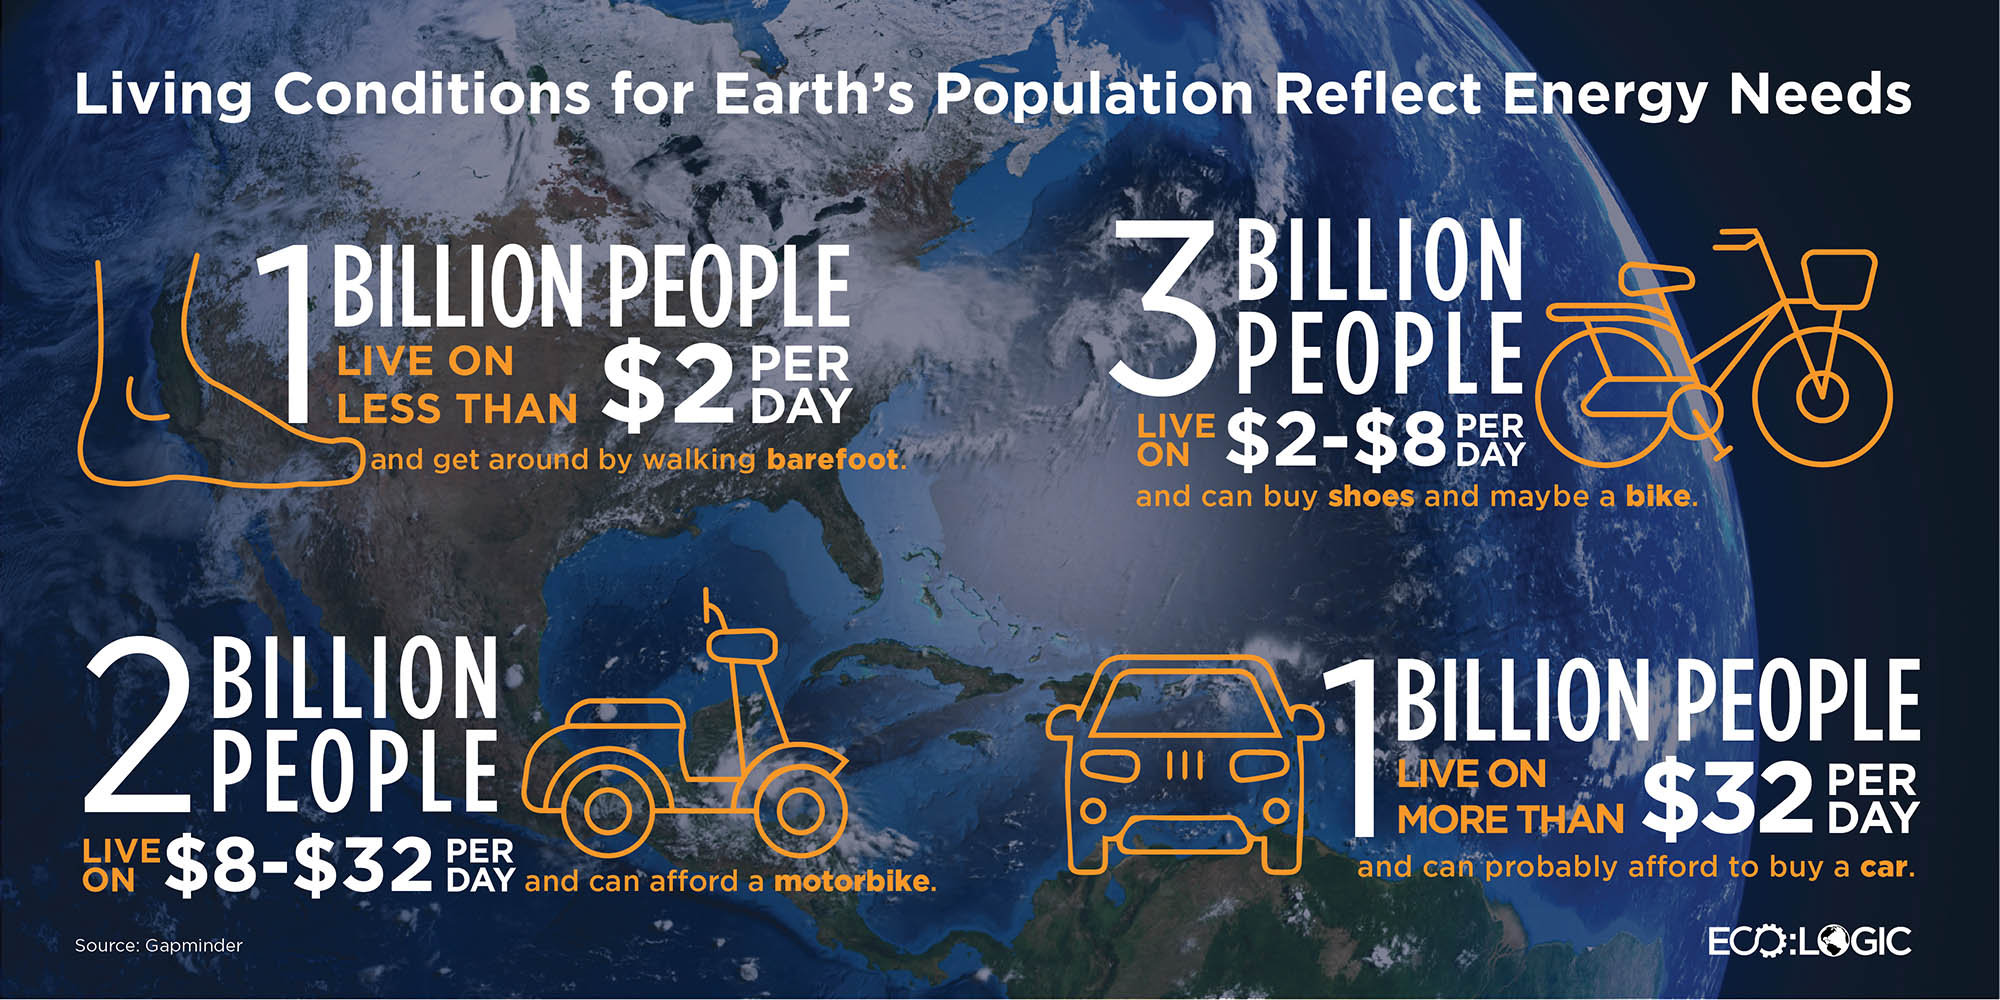 Living Conditions for Earth's Population Reflect Energy Needs